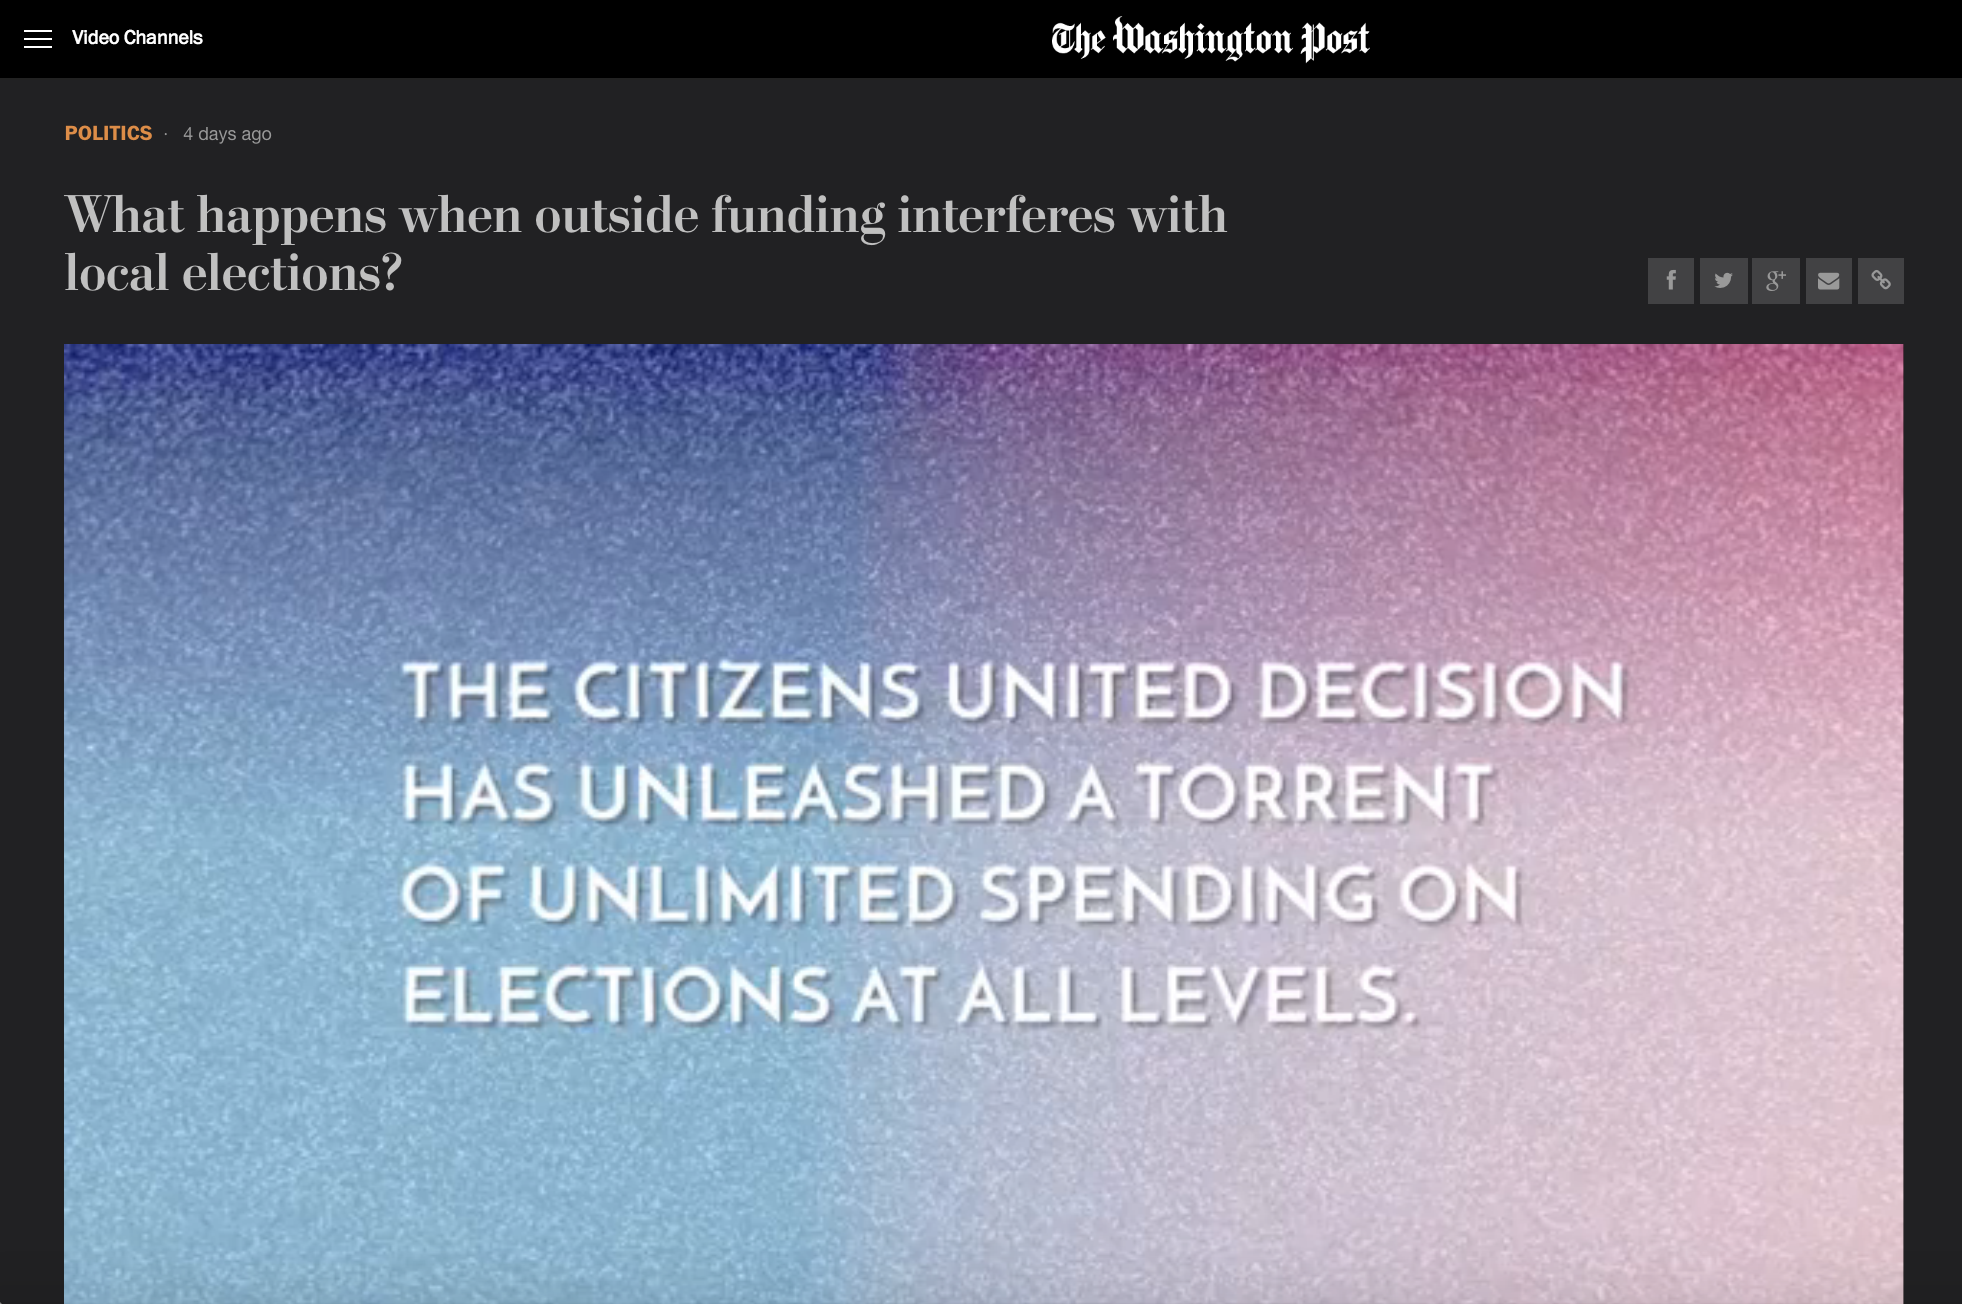 What happens when outside funding interferes with local elections?